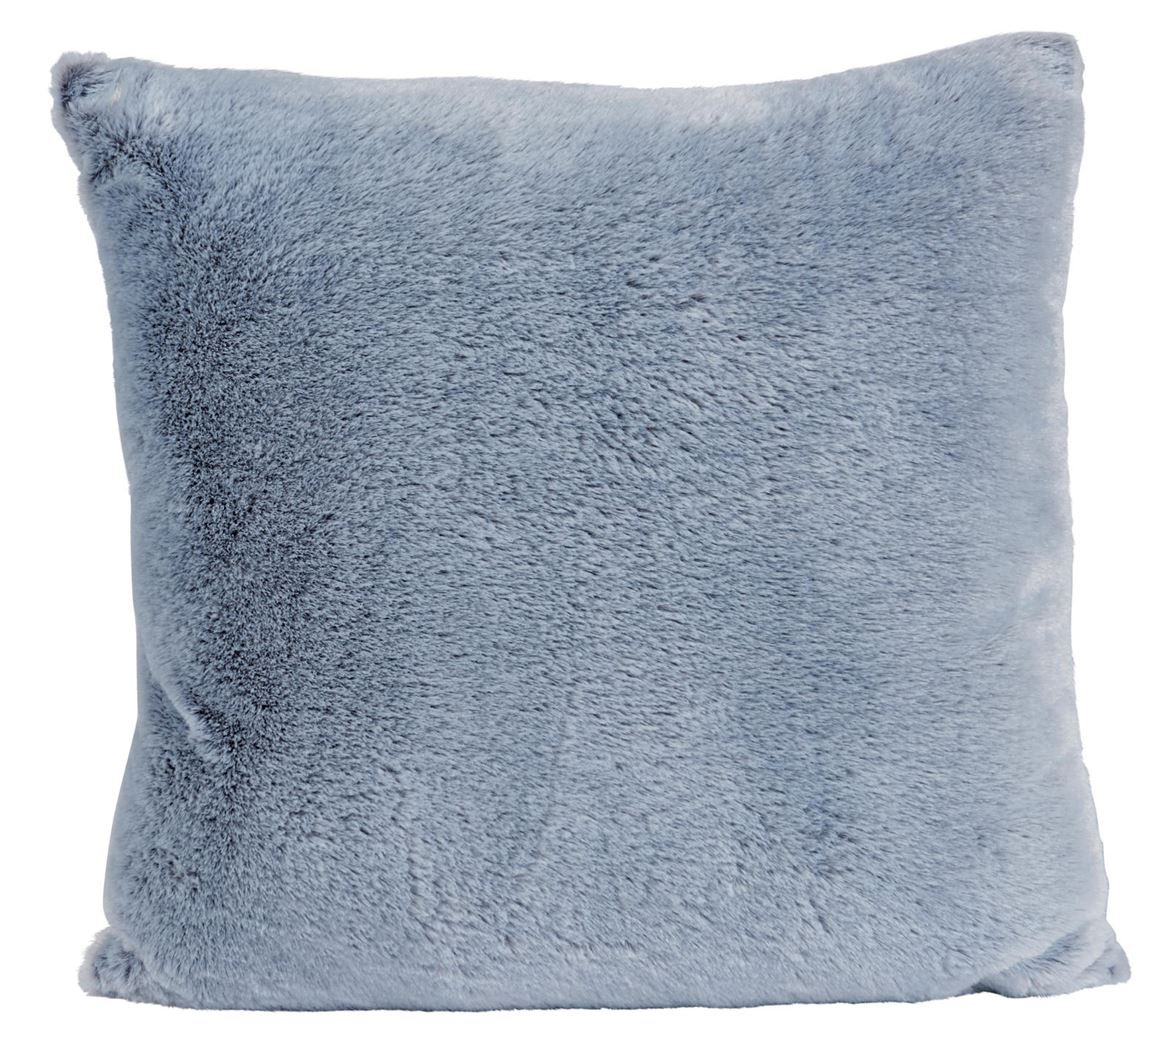 TWO TONE Coussin gris Larg. 45 x Long. 45 cm_two-tone-coussin-gris-larg--45-x-long--45-cm